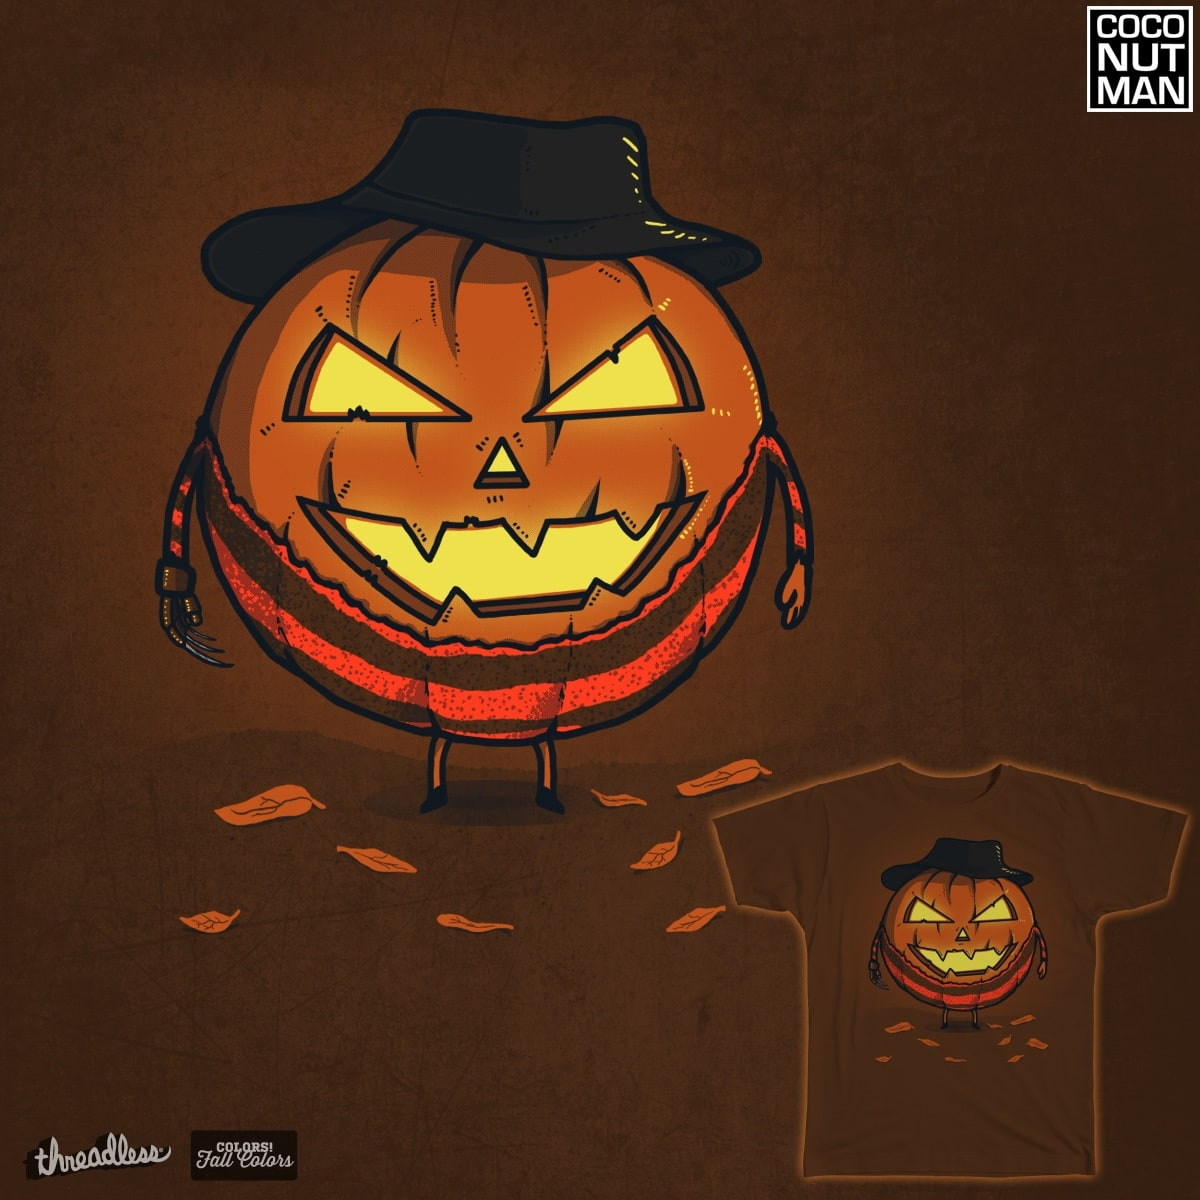 A Nightmare on Halloween by coconutman on Threadless